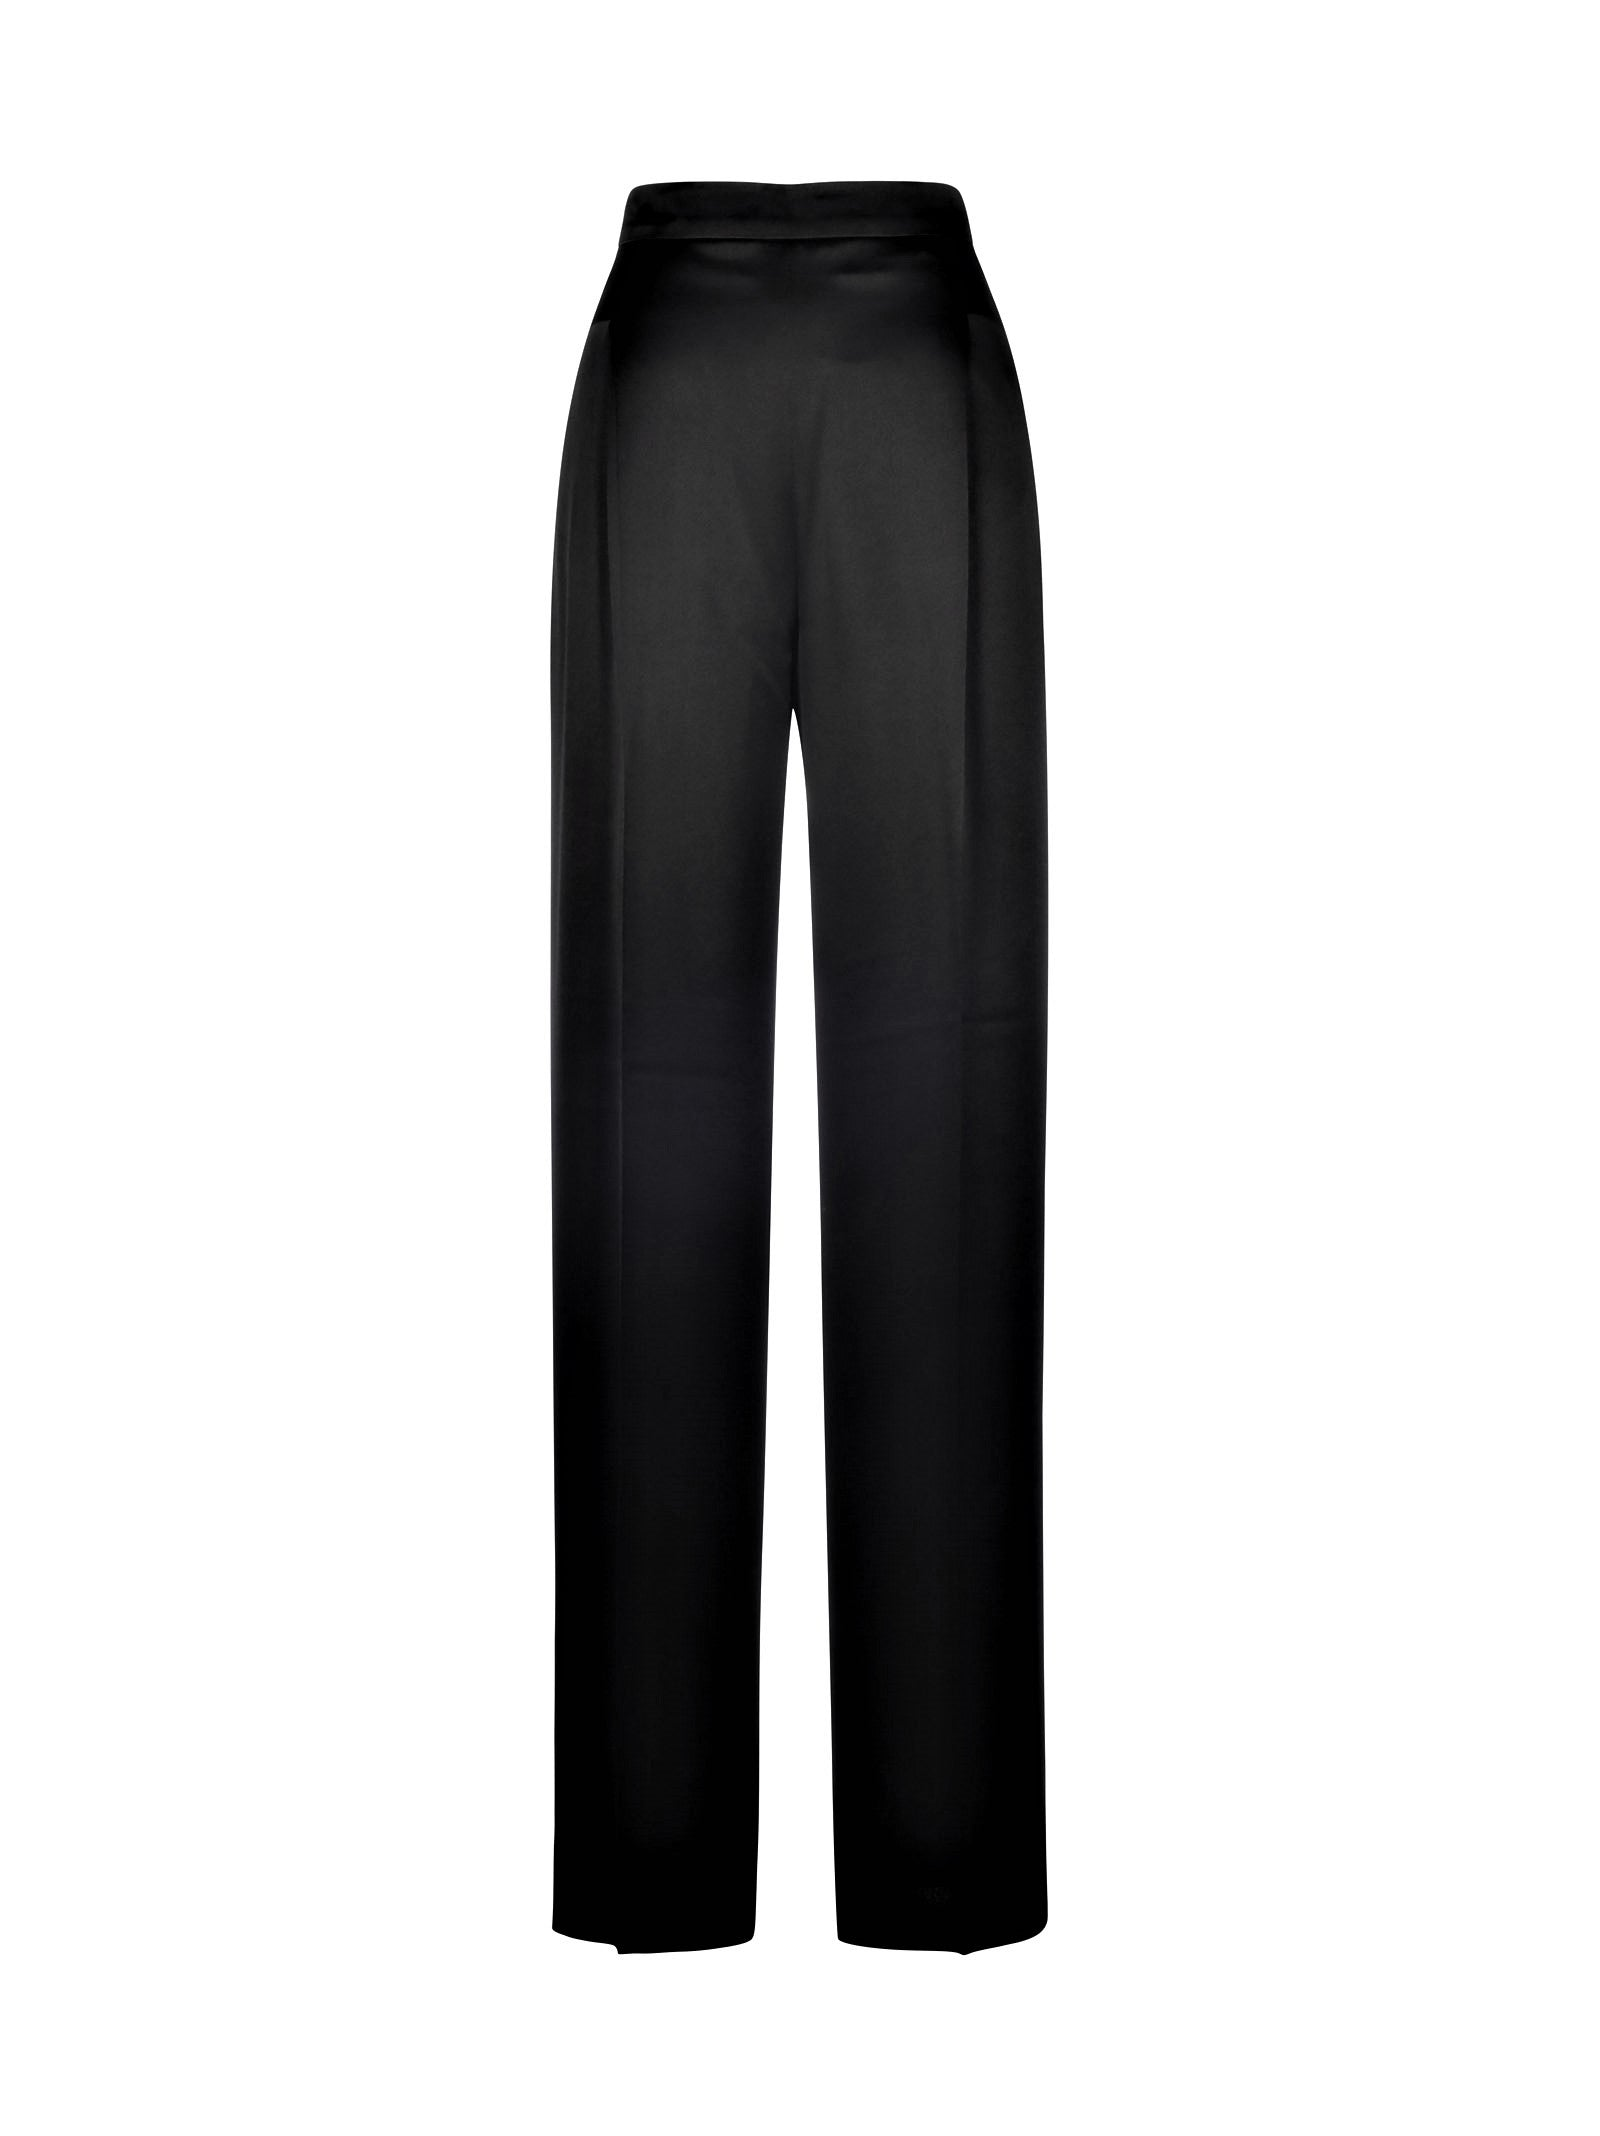 Eremi trousers